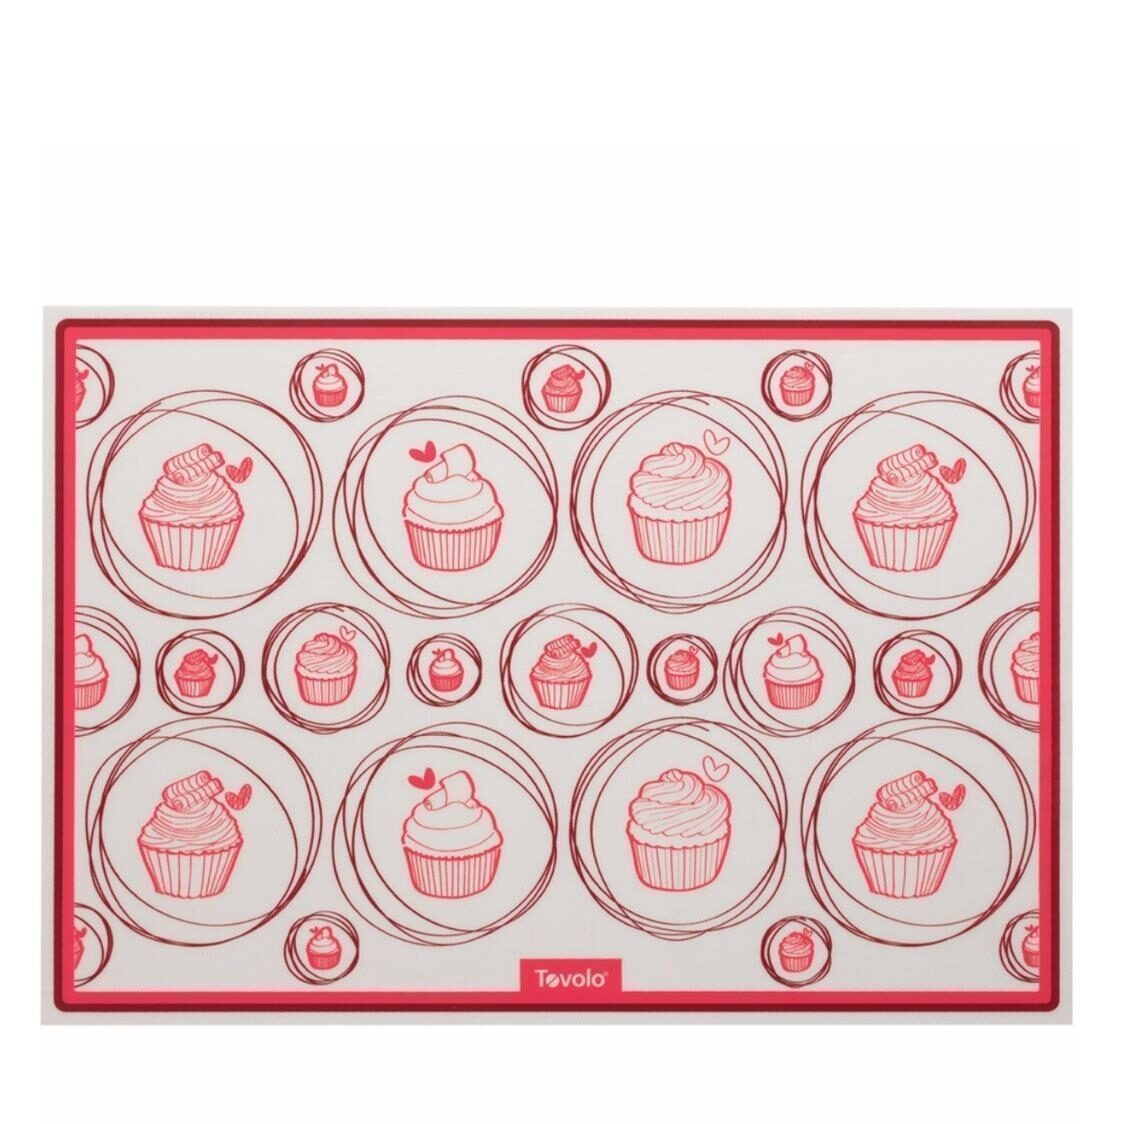 Silicone Baking Mat Jelly Roll